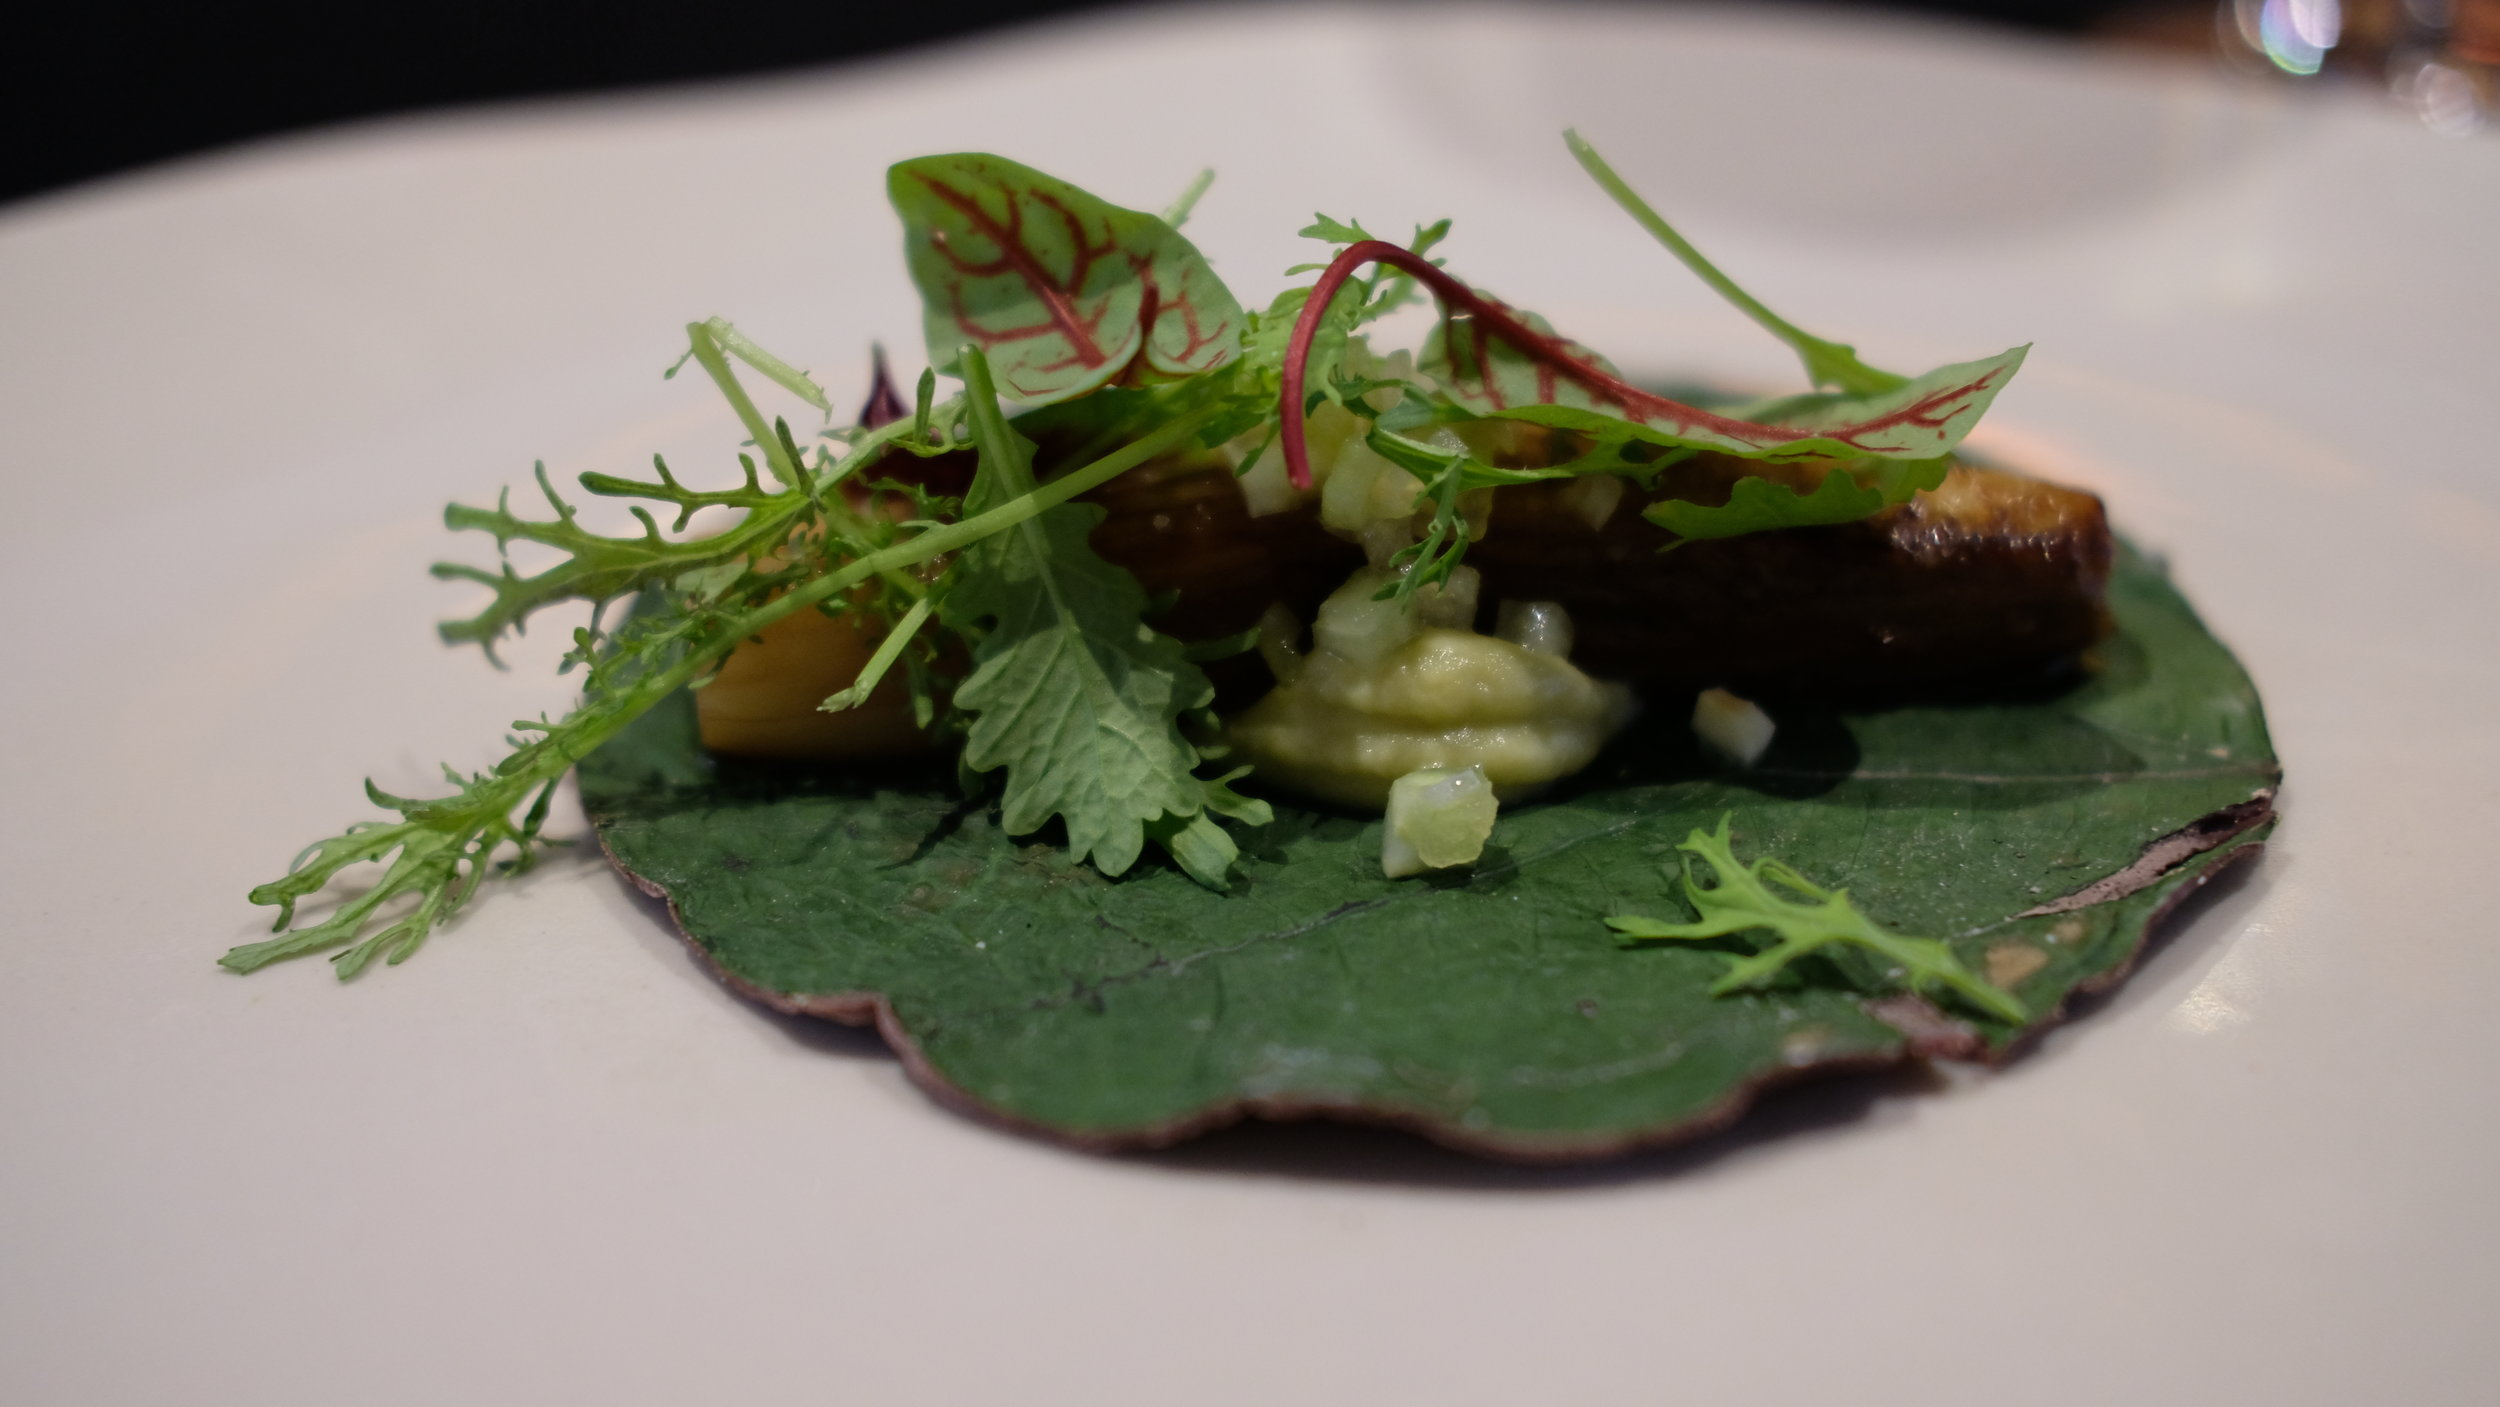 Eggplant taco with hoja santa and green pico de gallo on a blue corn tortilla